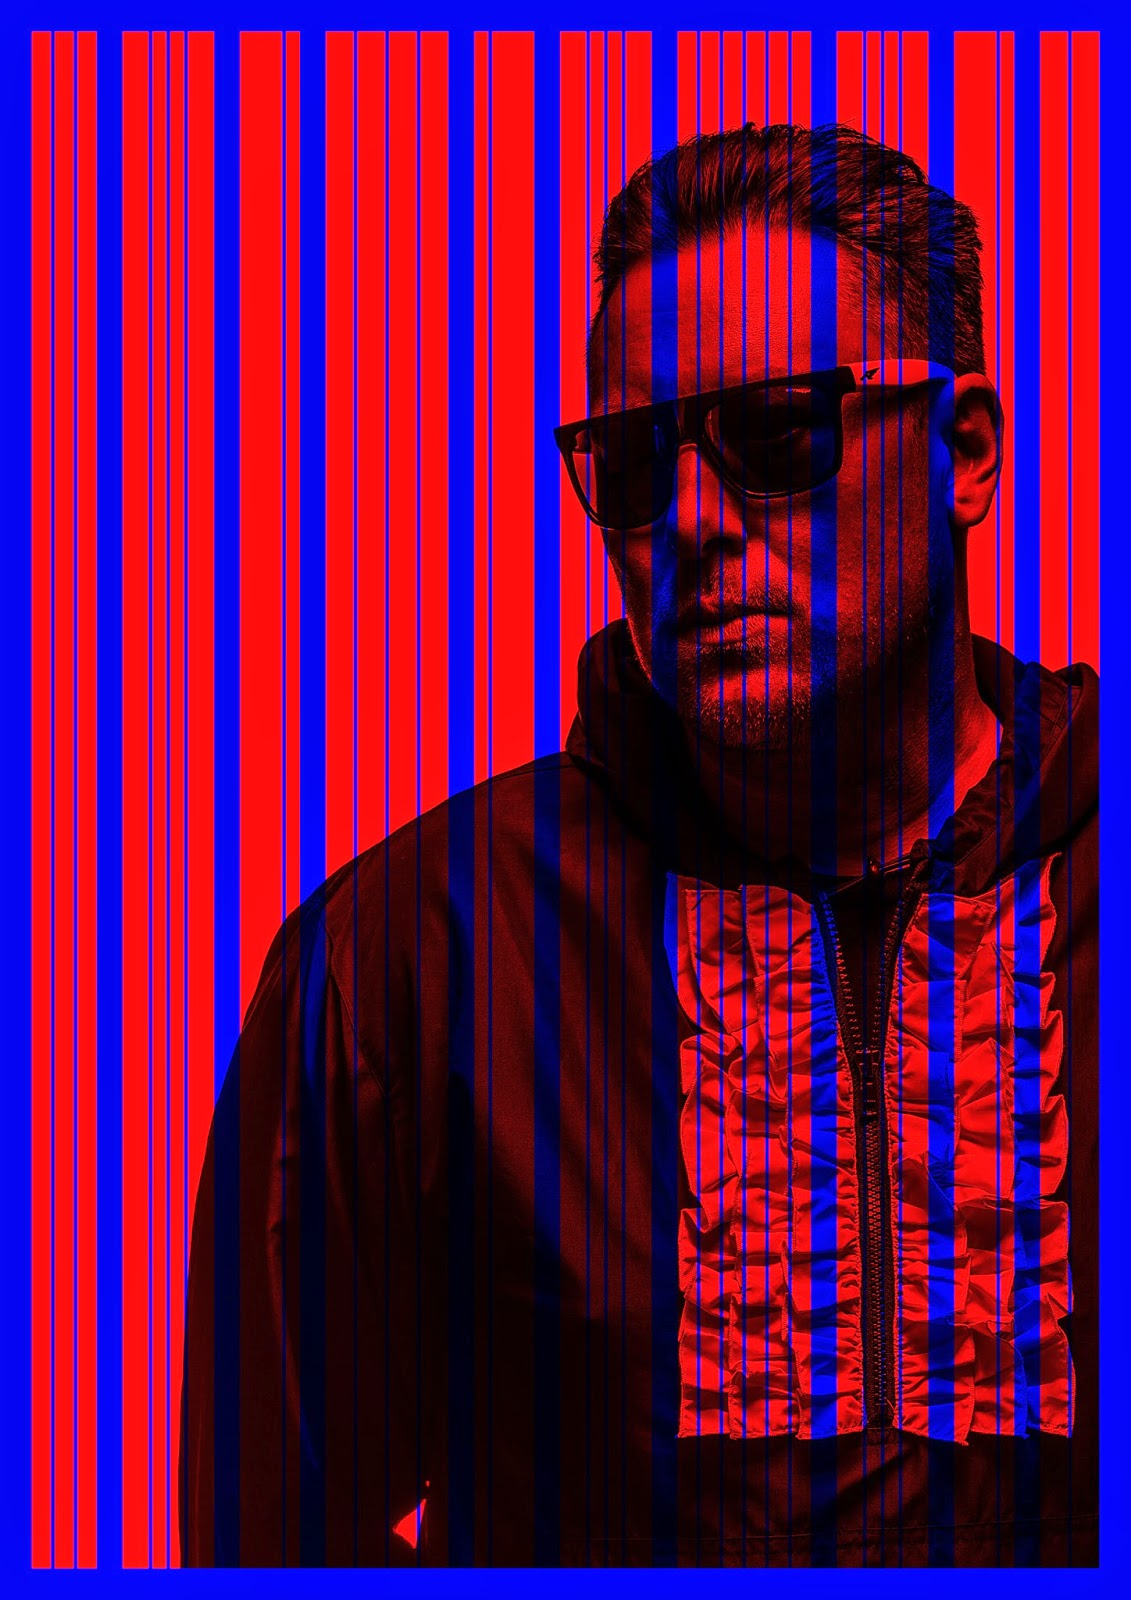 UMEK to release his 4th album on Spinnin'